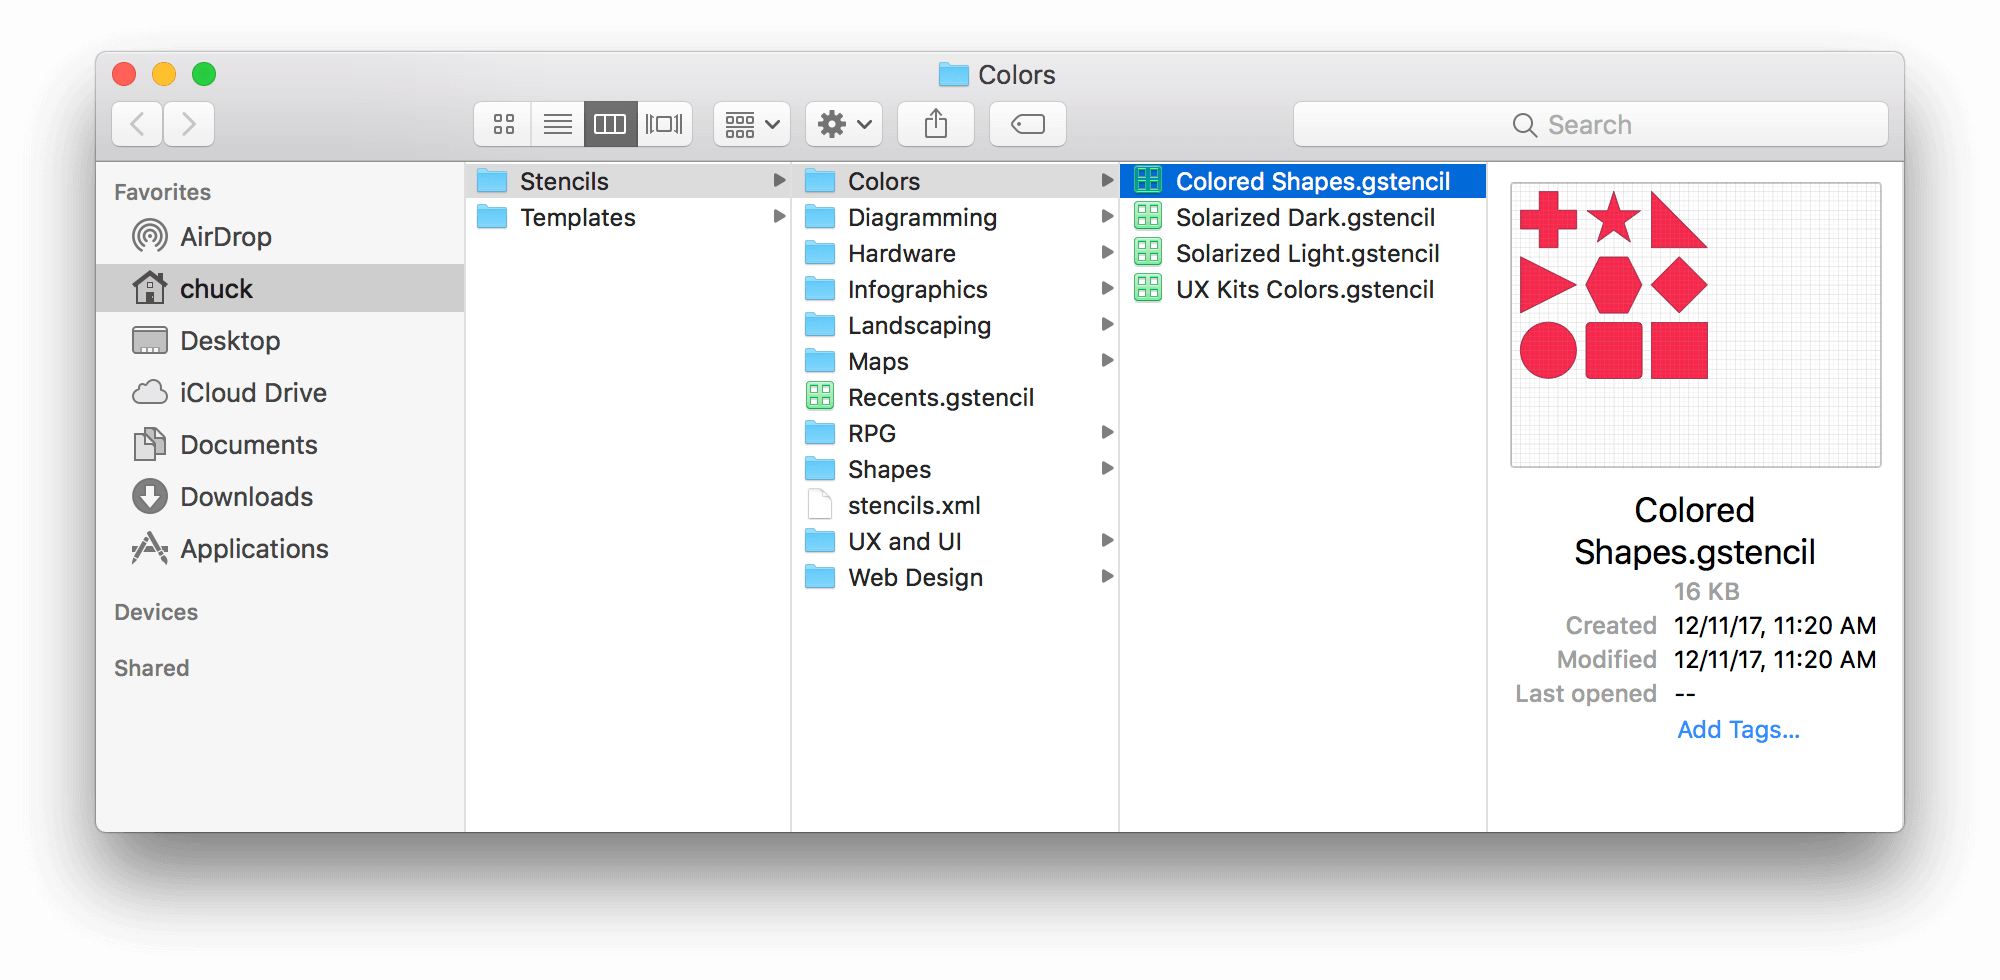 A Finder window, open to the Colors folder, within the Stencils folder.